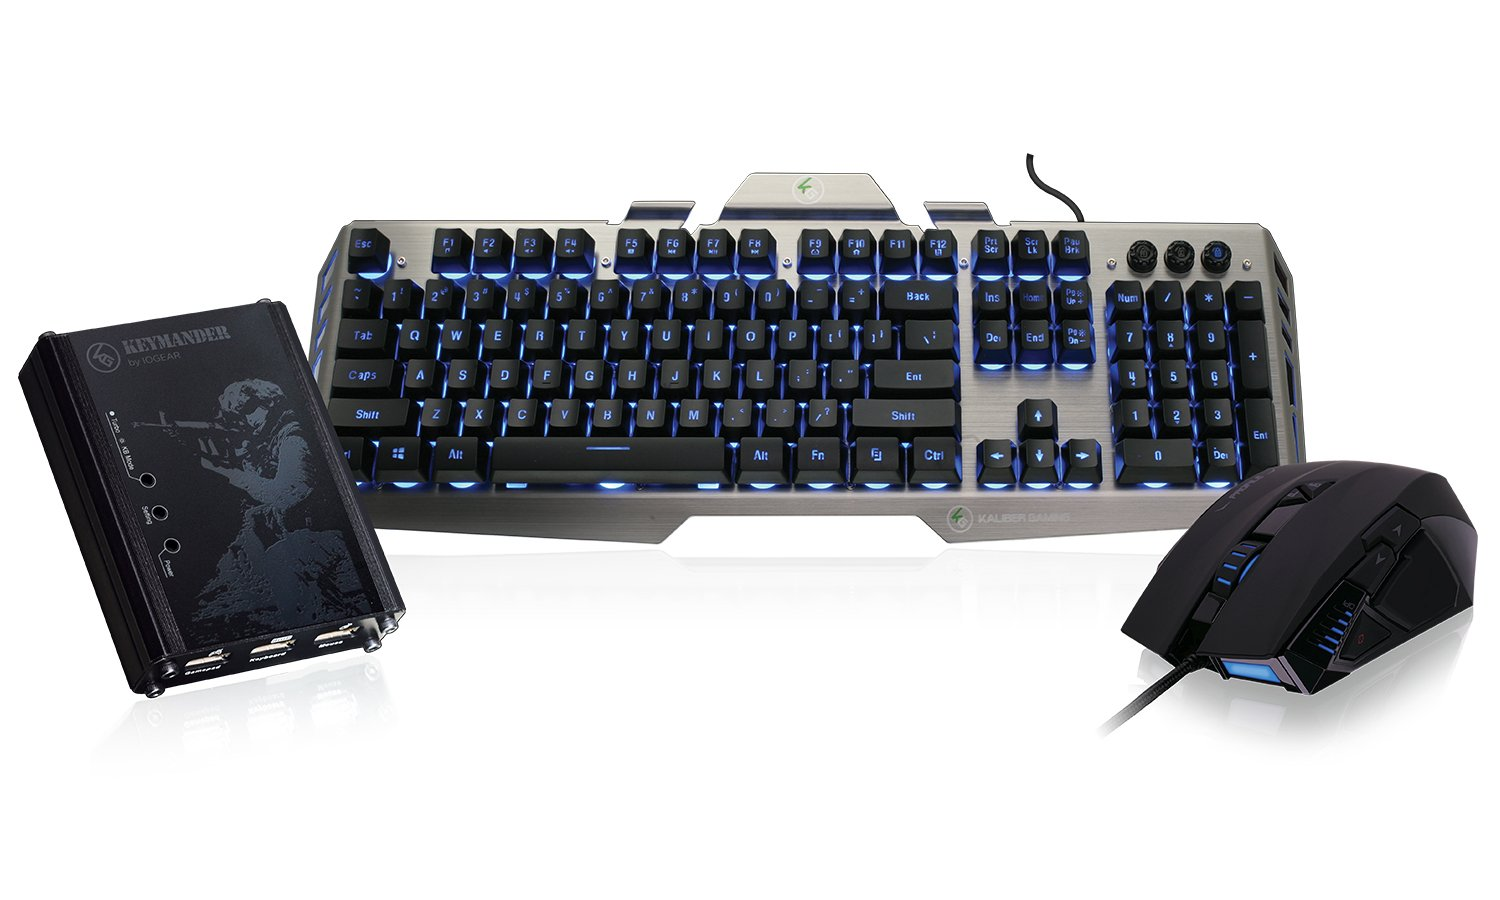 03e7d7a43e5 Amazon.com: IOGEAR KeyMander Performance Kit- Includes keyboard, mouse and  adapter for Xbox One, PS4, PS3, Xbox 360 (GE1337PKIT2): Computers &  Accessories